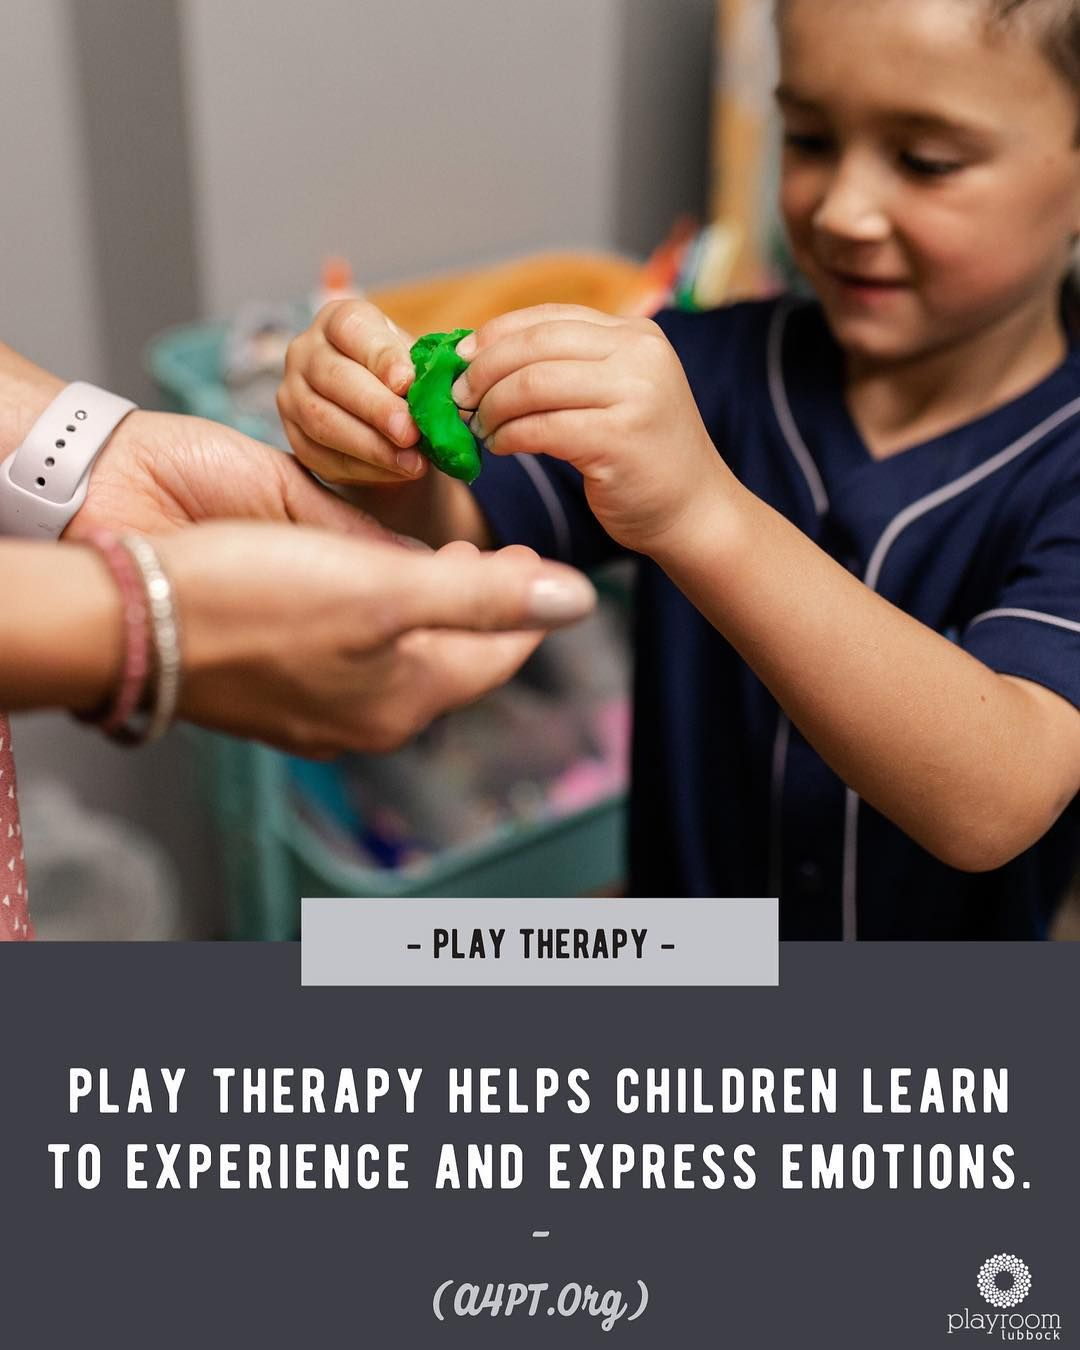 Play Therapy Makes A Difference Not An Actual Client Pictured Therapy Play Therapy Kids Learning